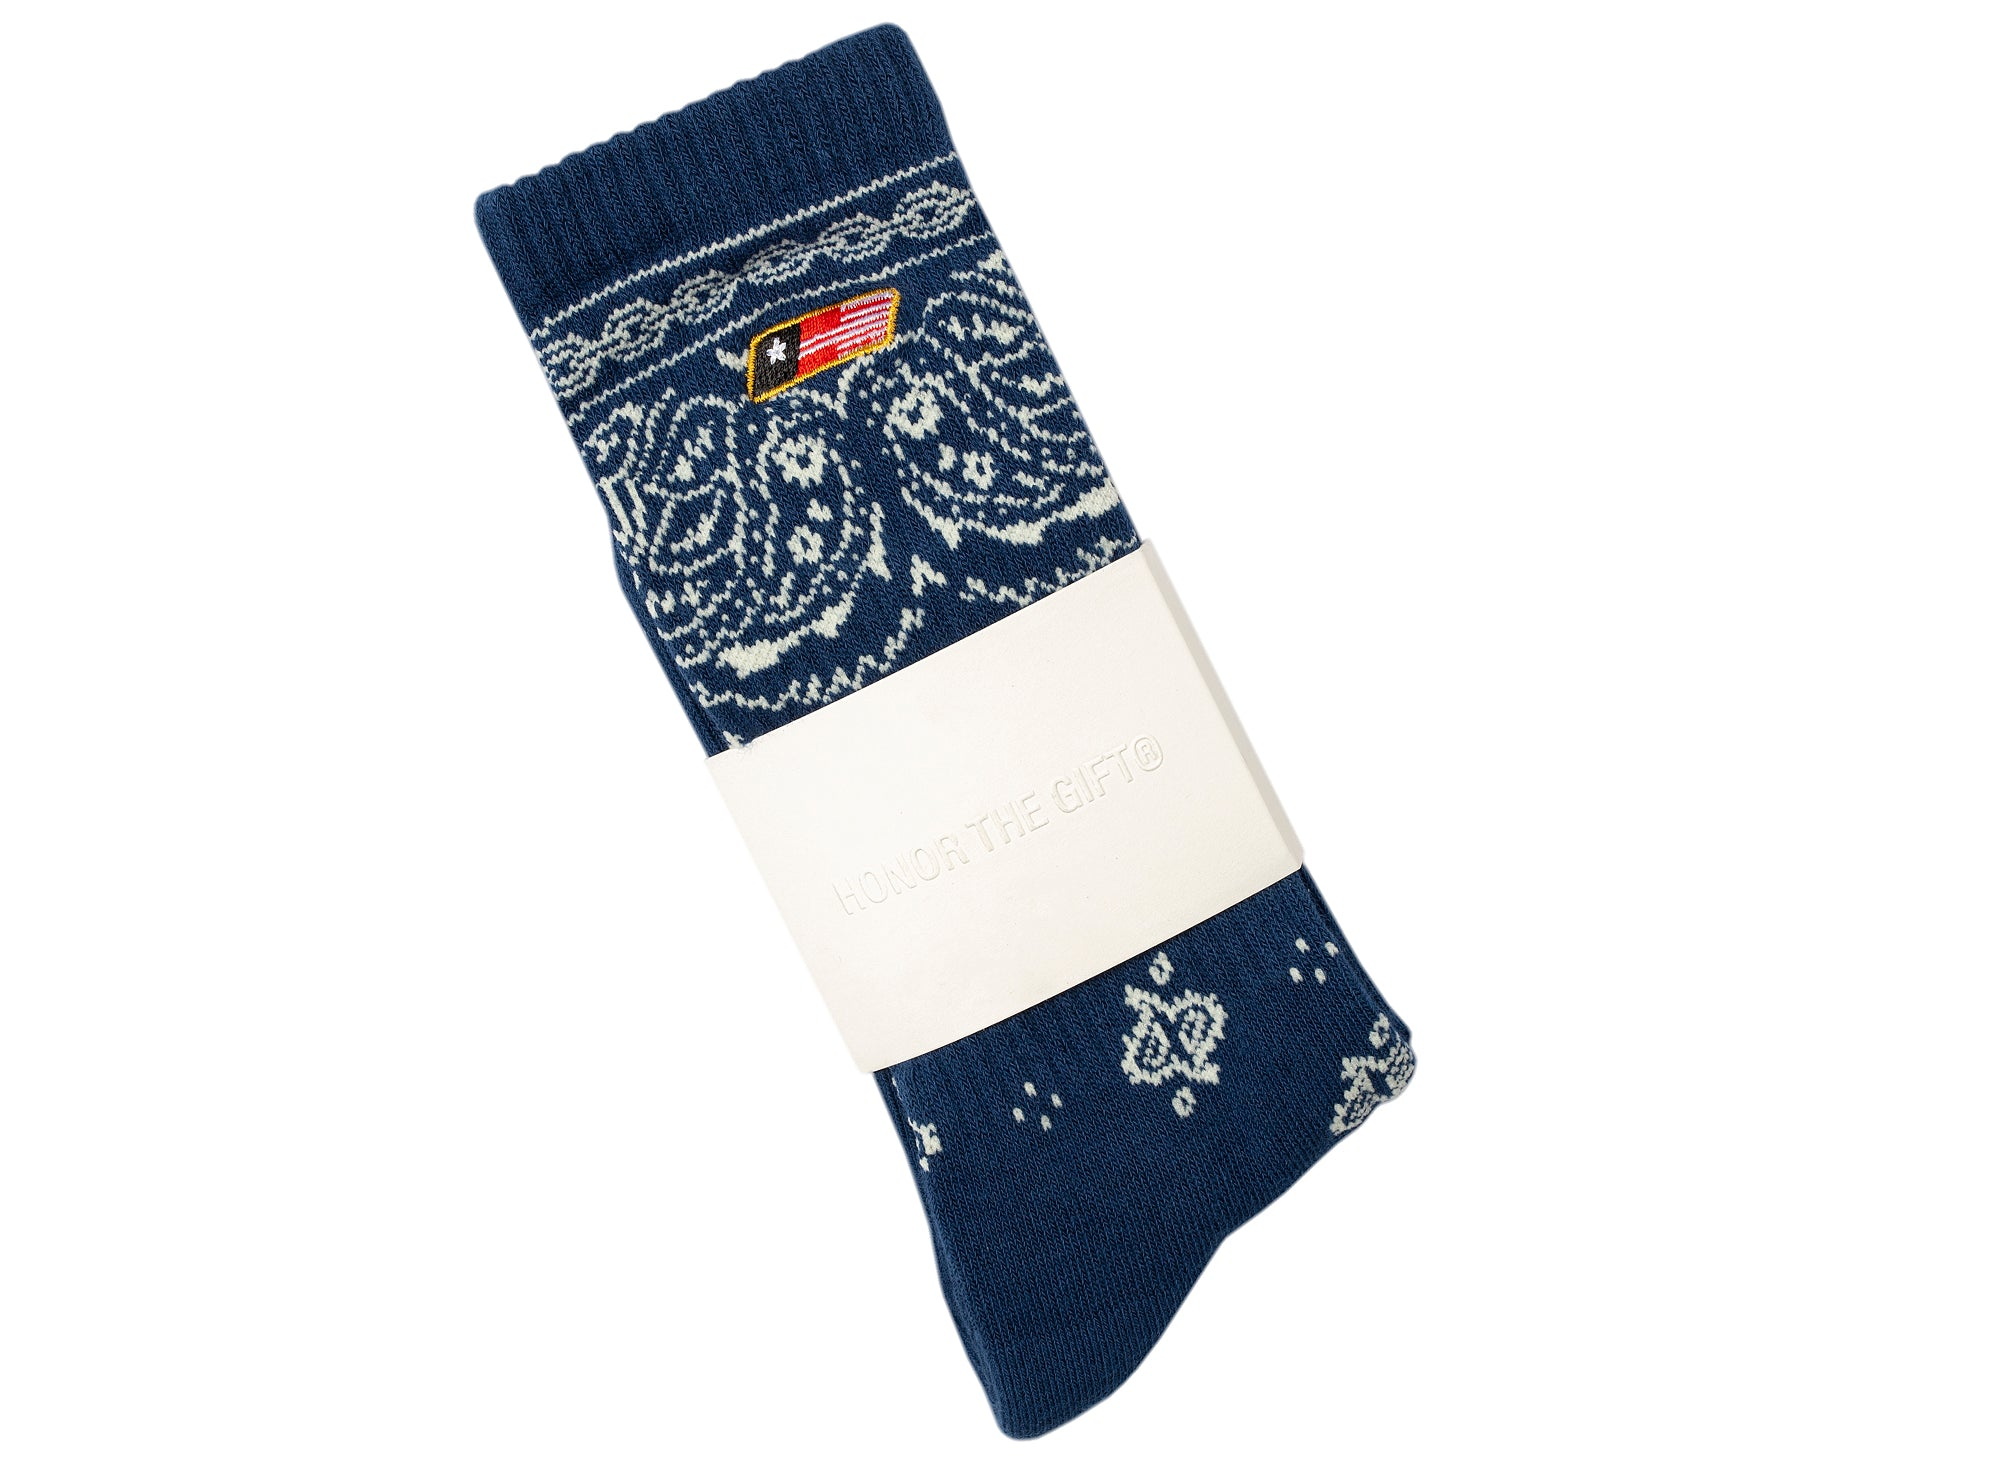 Honor the Gift Bandana Socks in Navy xld